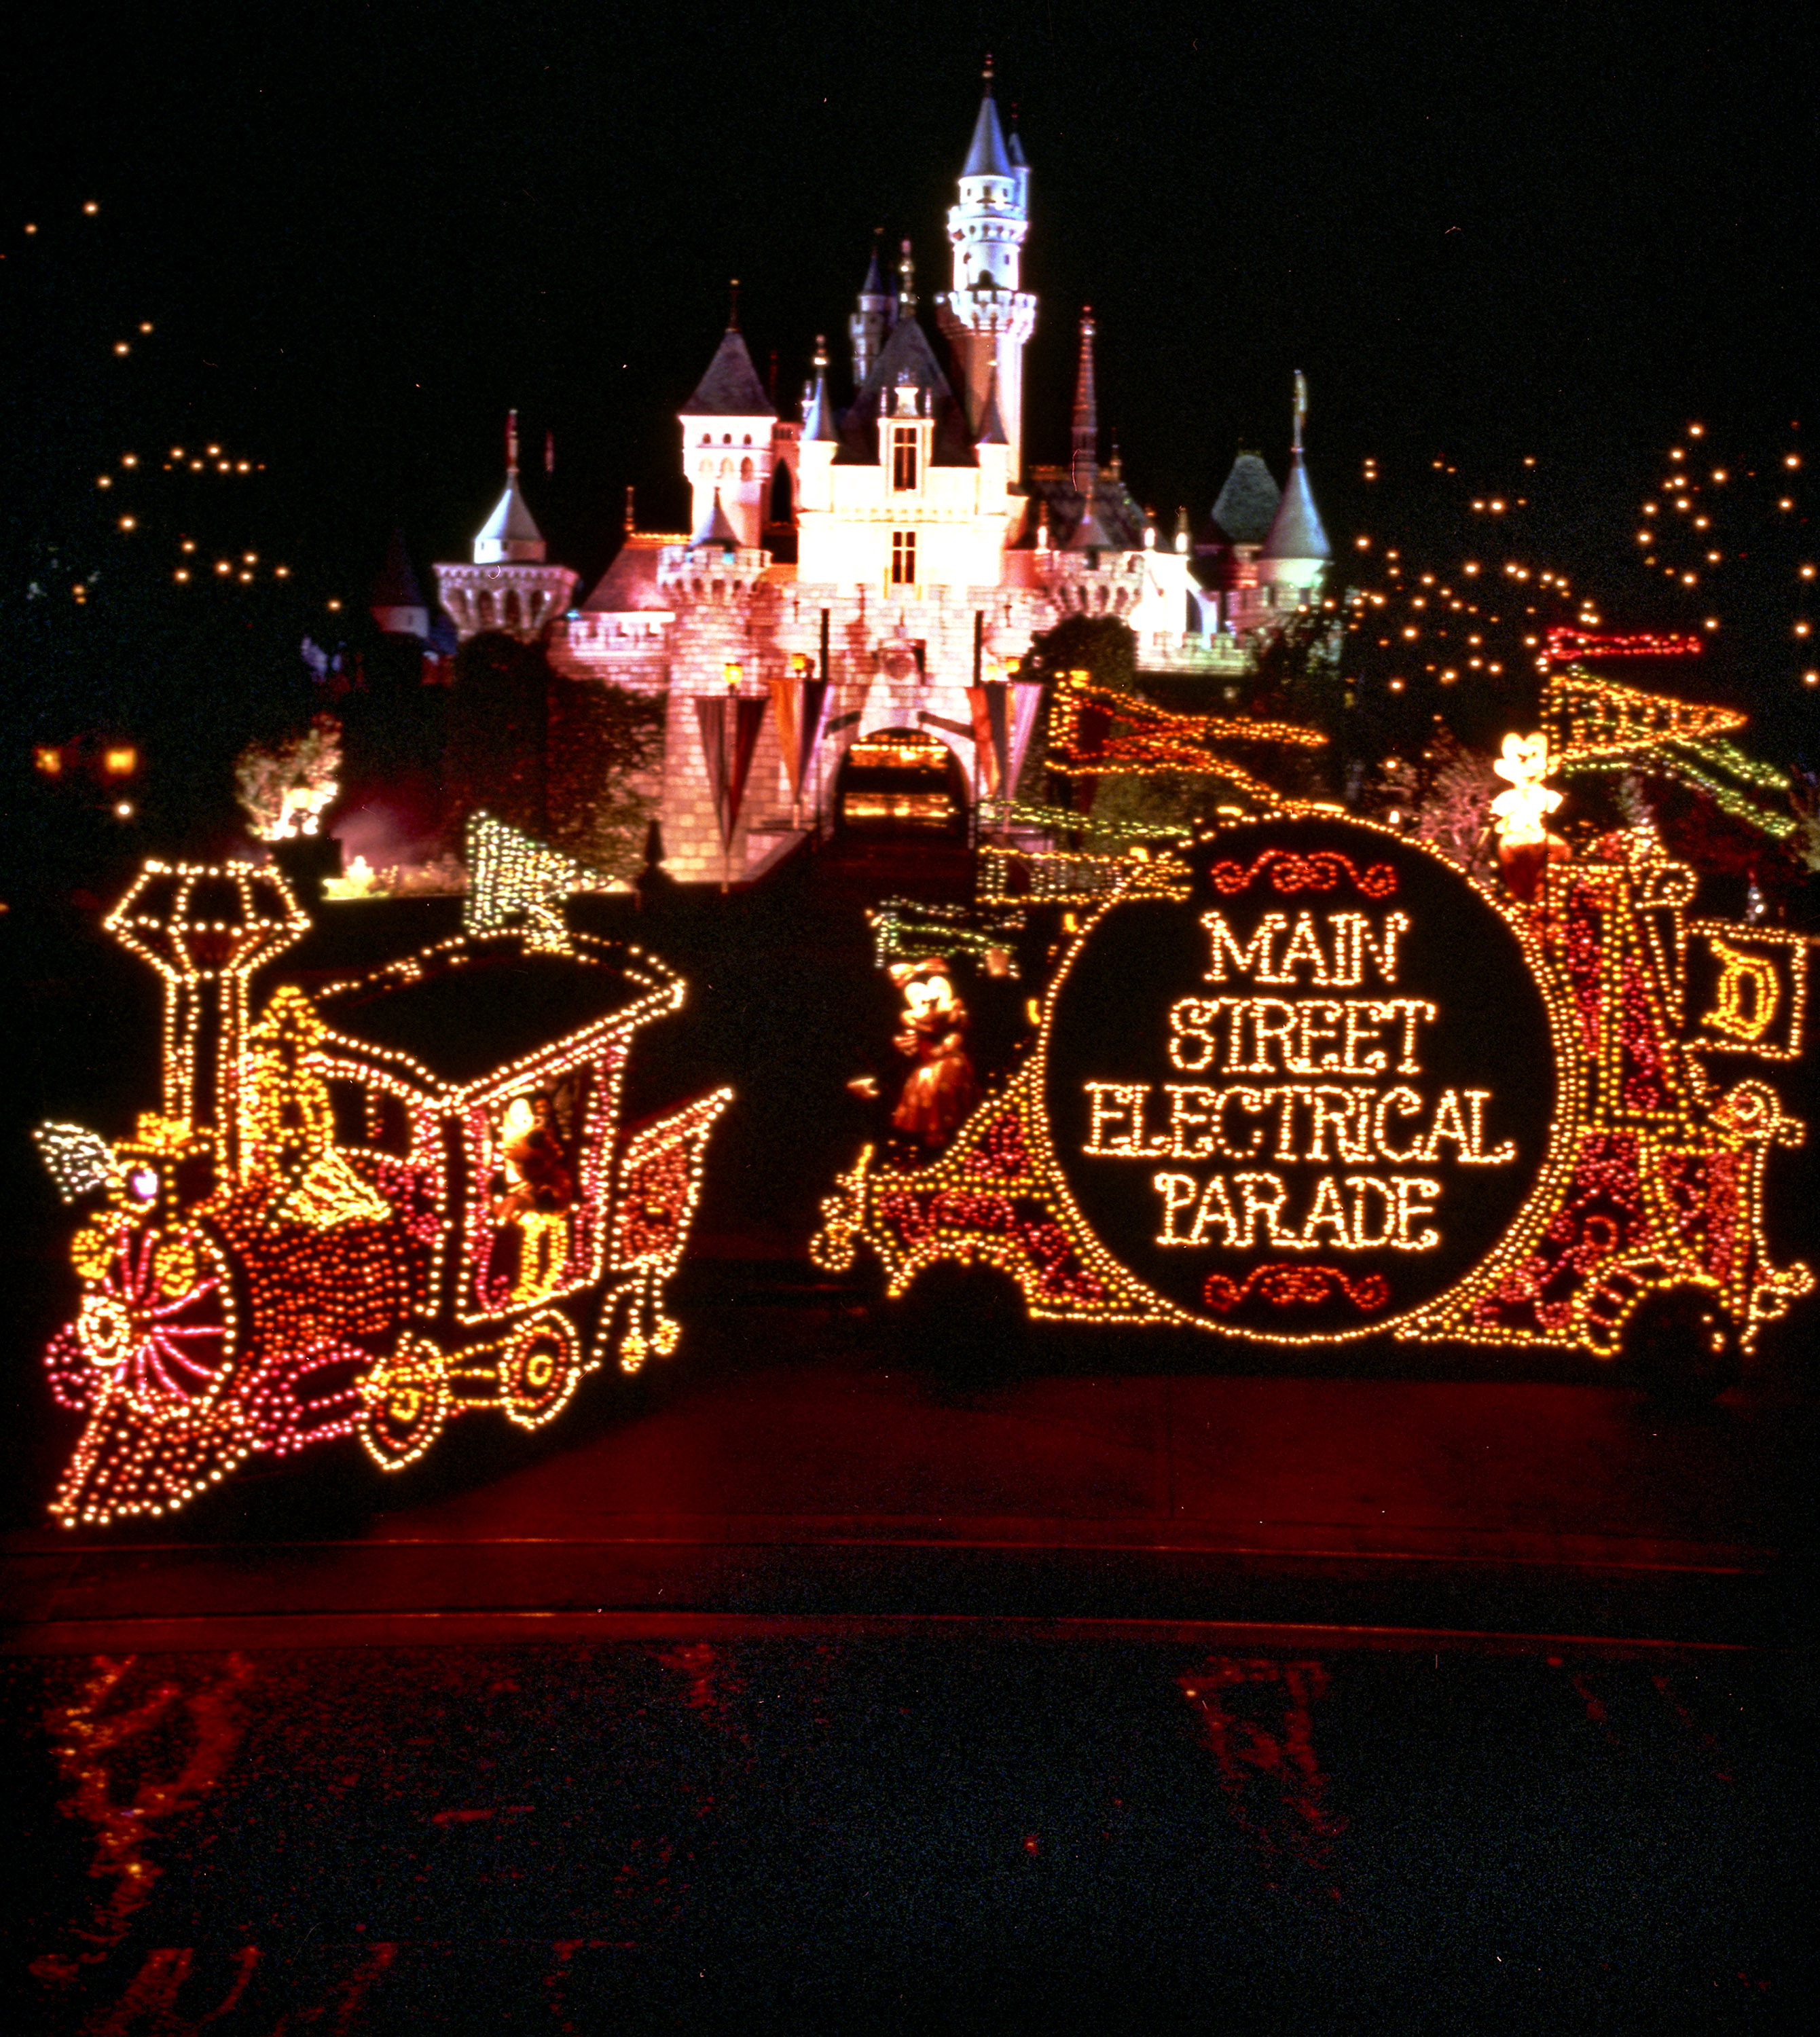 Main Street Electrical Parade Coming to Disneyland Park for a Limited Time; Last Chance to 'Paint the Night'